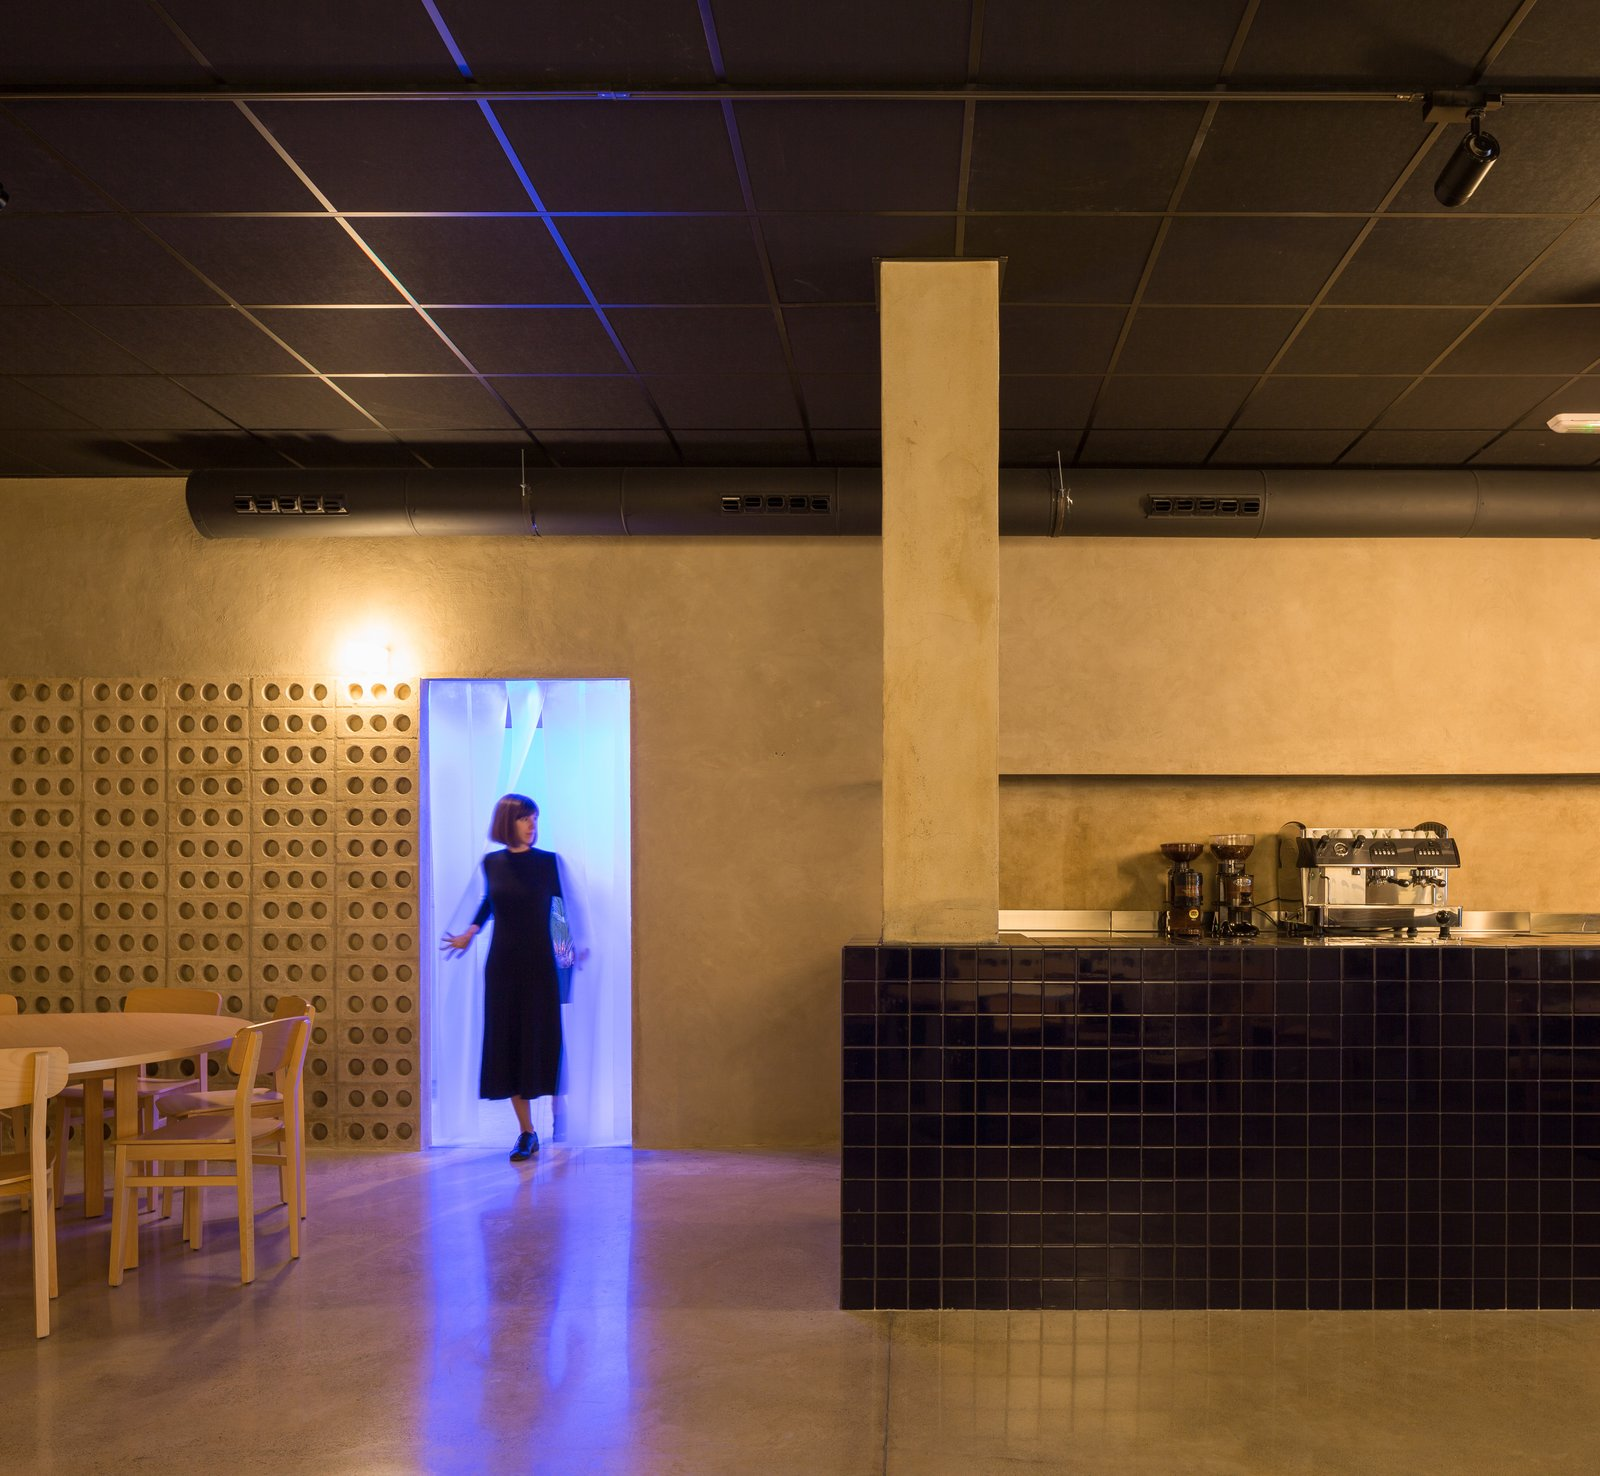 Kitchen, Tile Counter, Ceramic Tile Backsplashe, Concrete Floor, Wall Lighting, Accent Lighting, and Track Lighting The translucent PVC slats are the entrance to the toilet.  IMOOD Restaurant